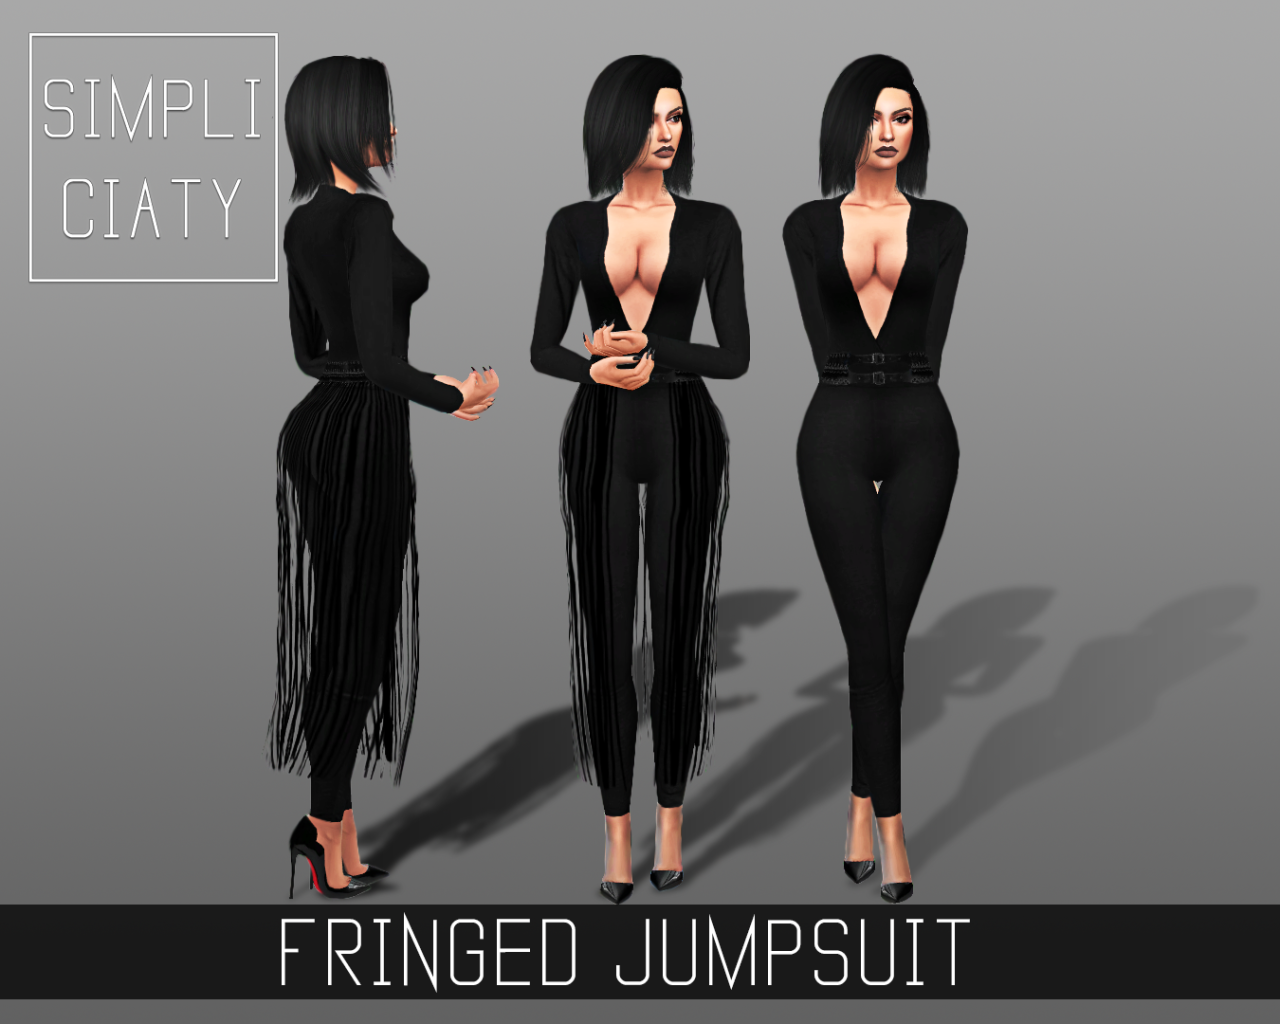 Fringed Jumpsuit by Simpliciaty